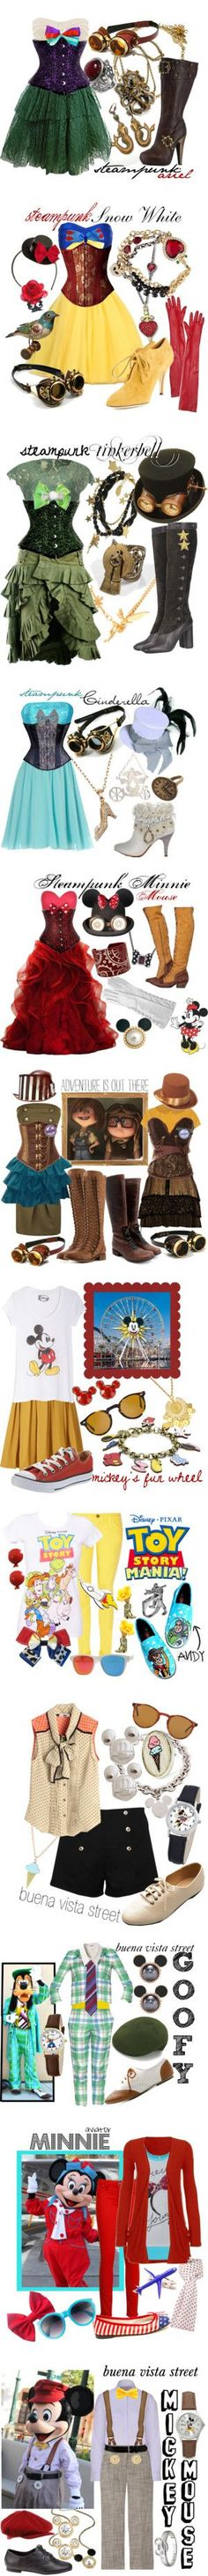 """Disney Inspired"" by princesschandler on Polyvore"